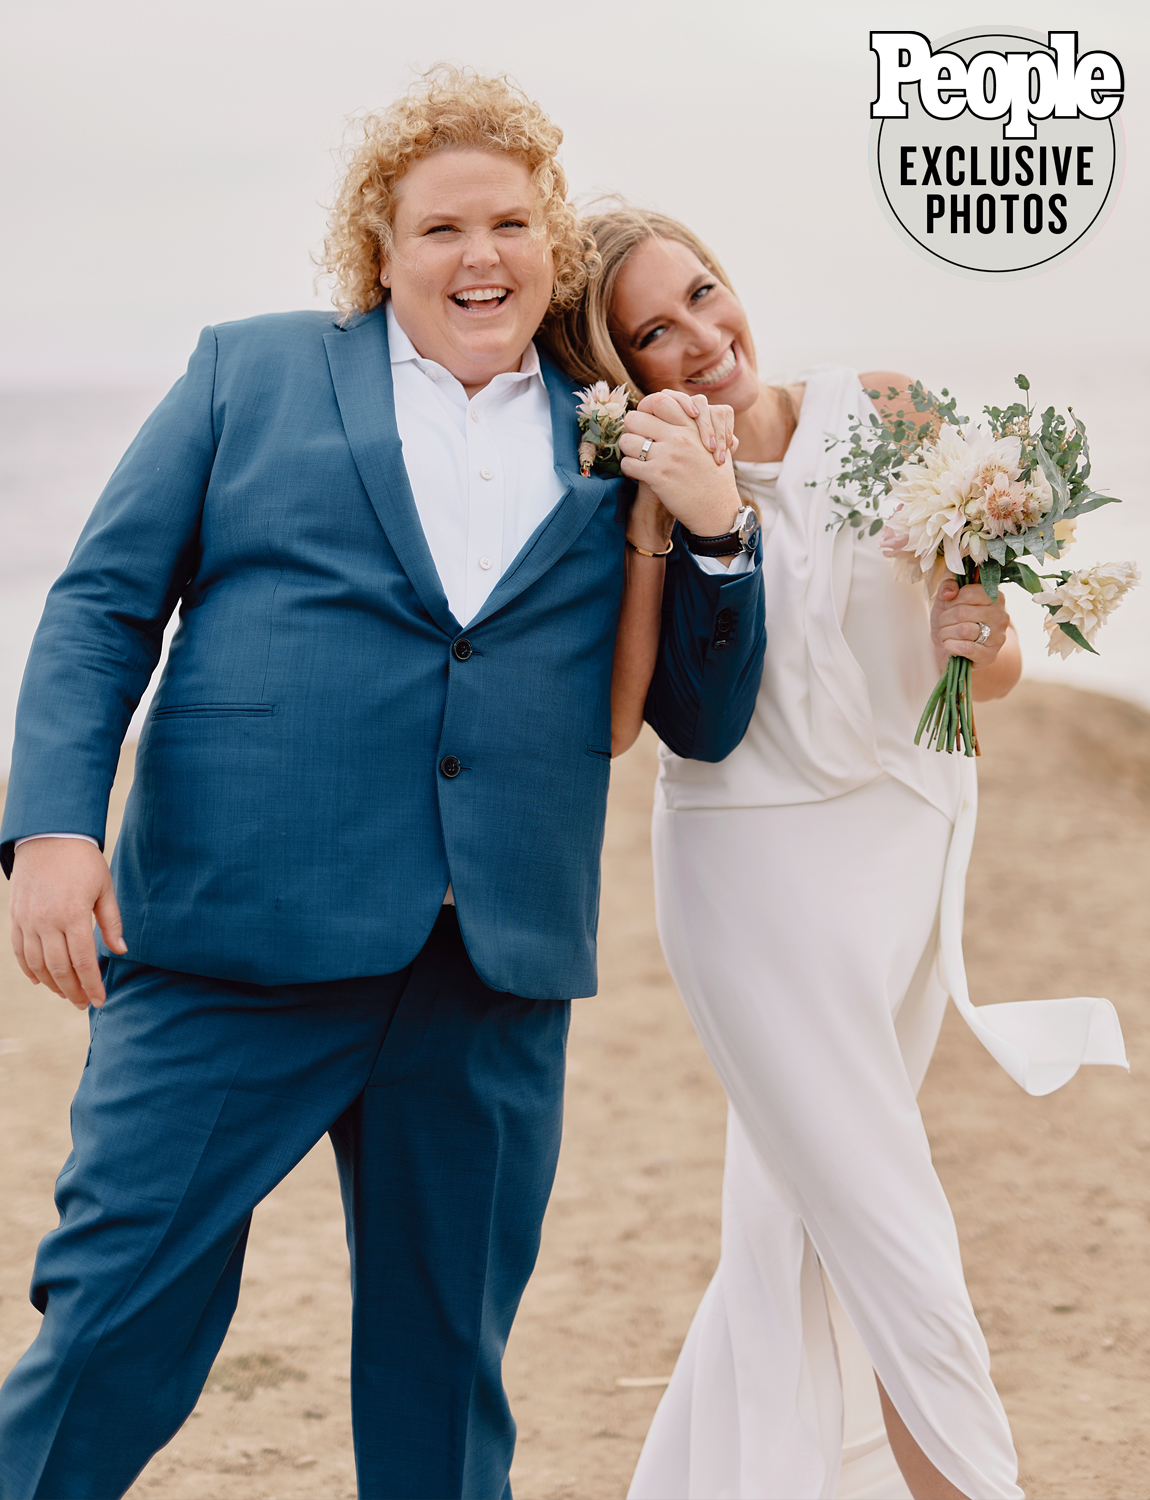 Fortune Feimster wedding